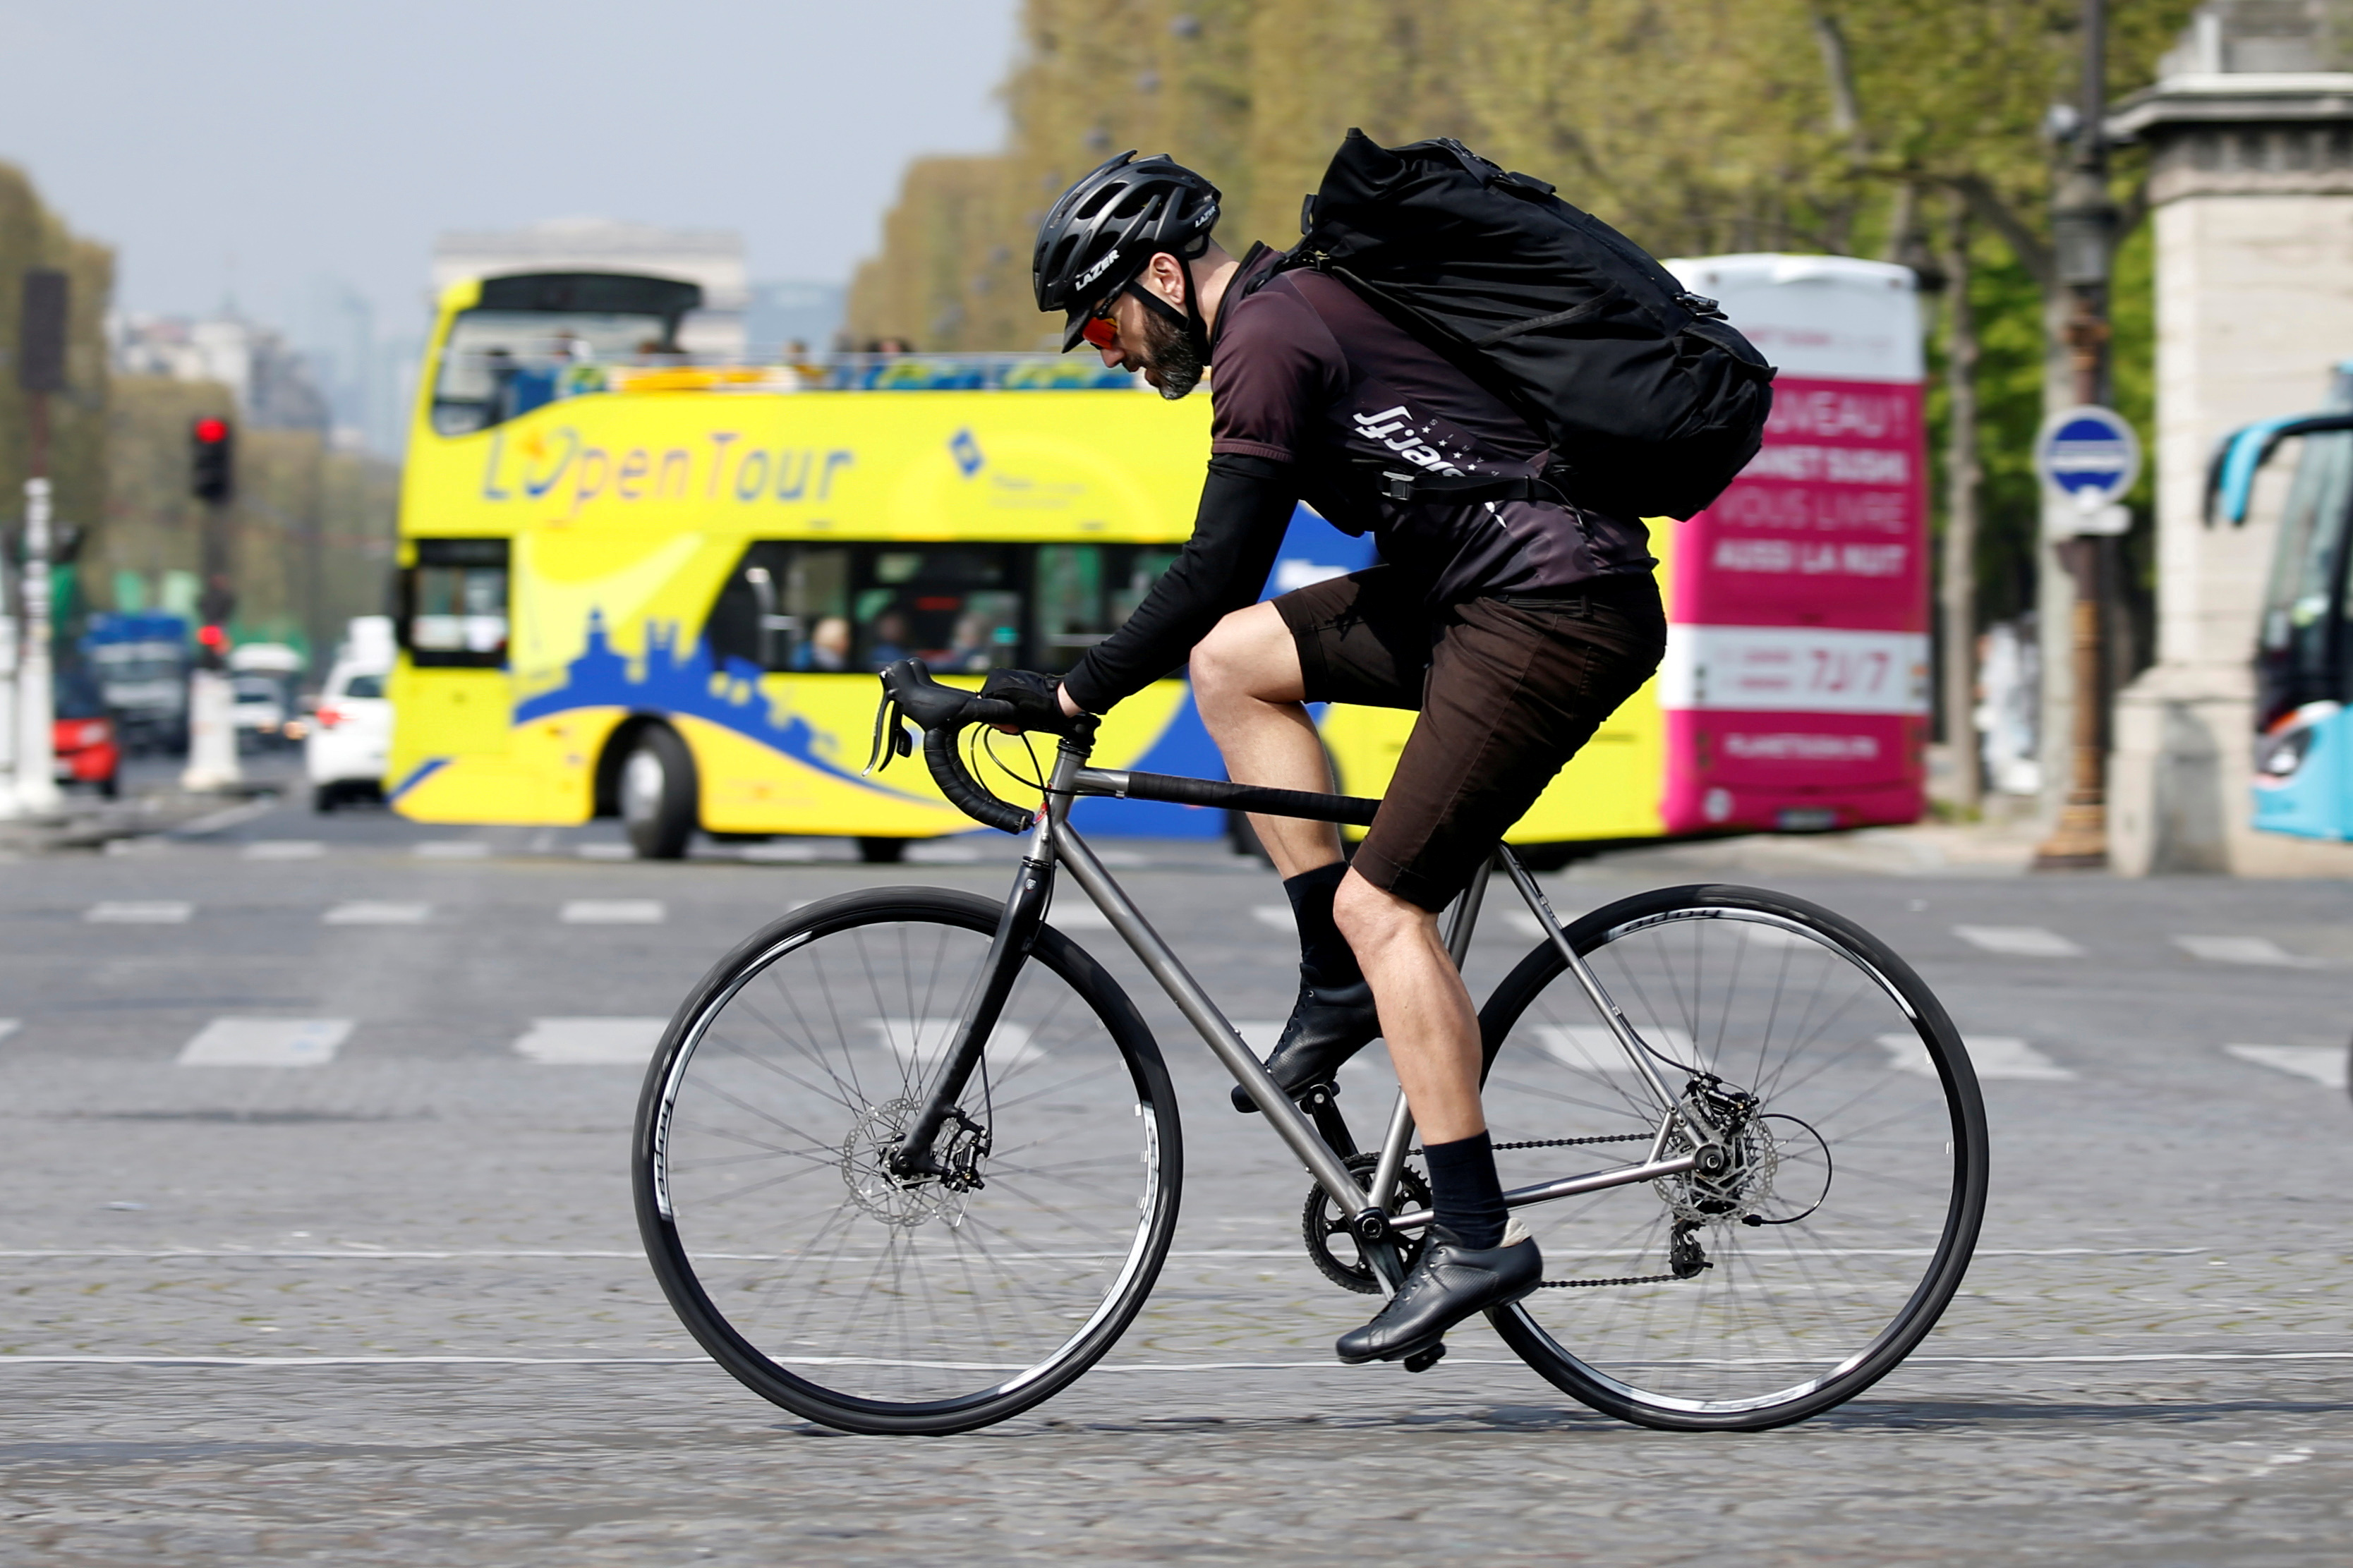 A cycling courier delivers goods, as part of the emerging 'gig economy', in Paris, France, April 4, 2017.  Picture taken April 4, 2017. REUTERS/Charles Platiau